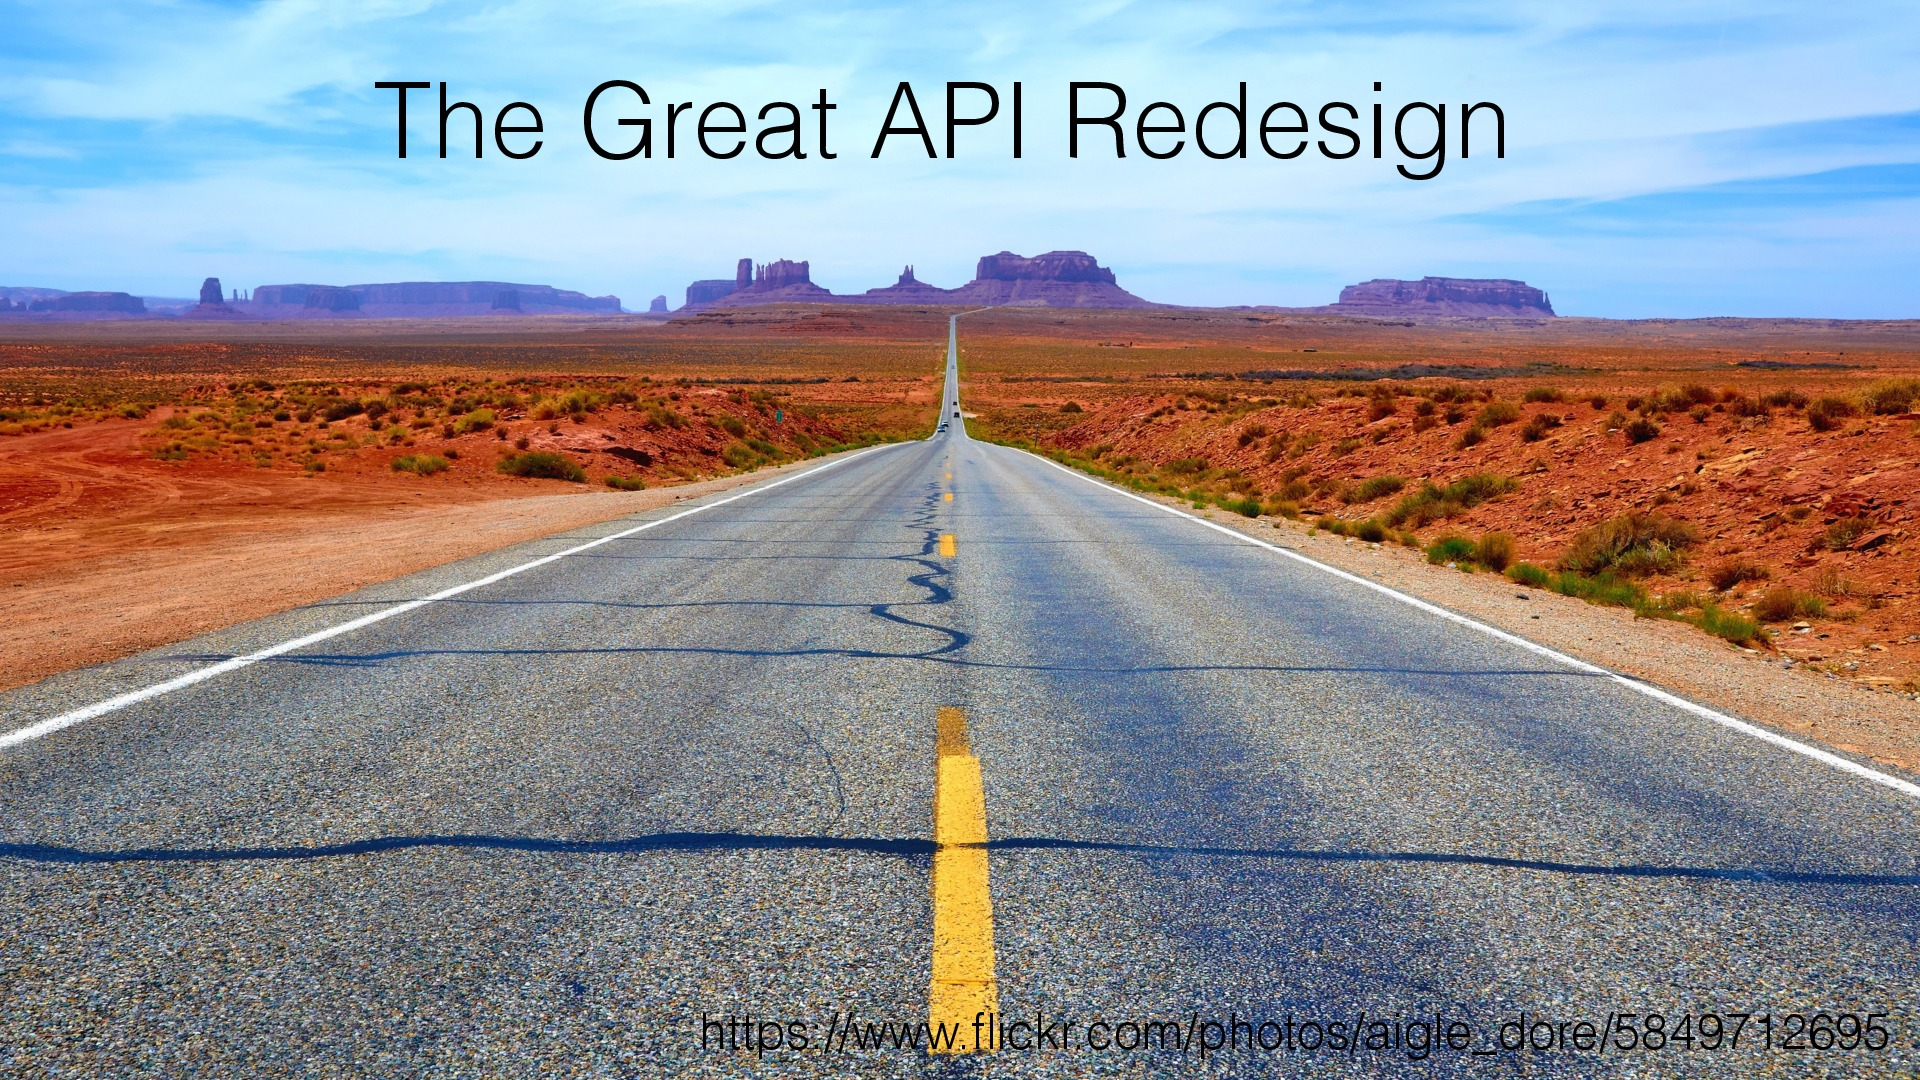 The Great 3 Year API Redesign